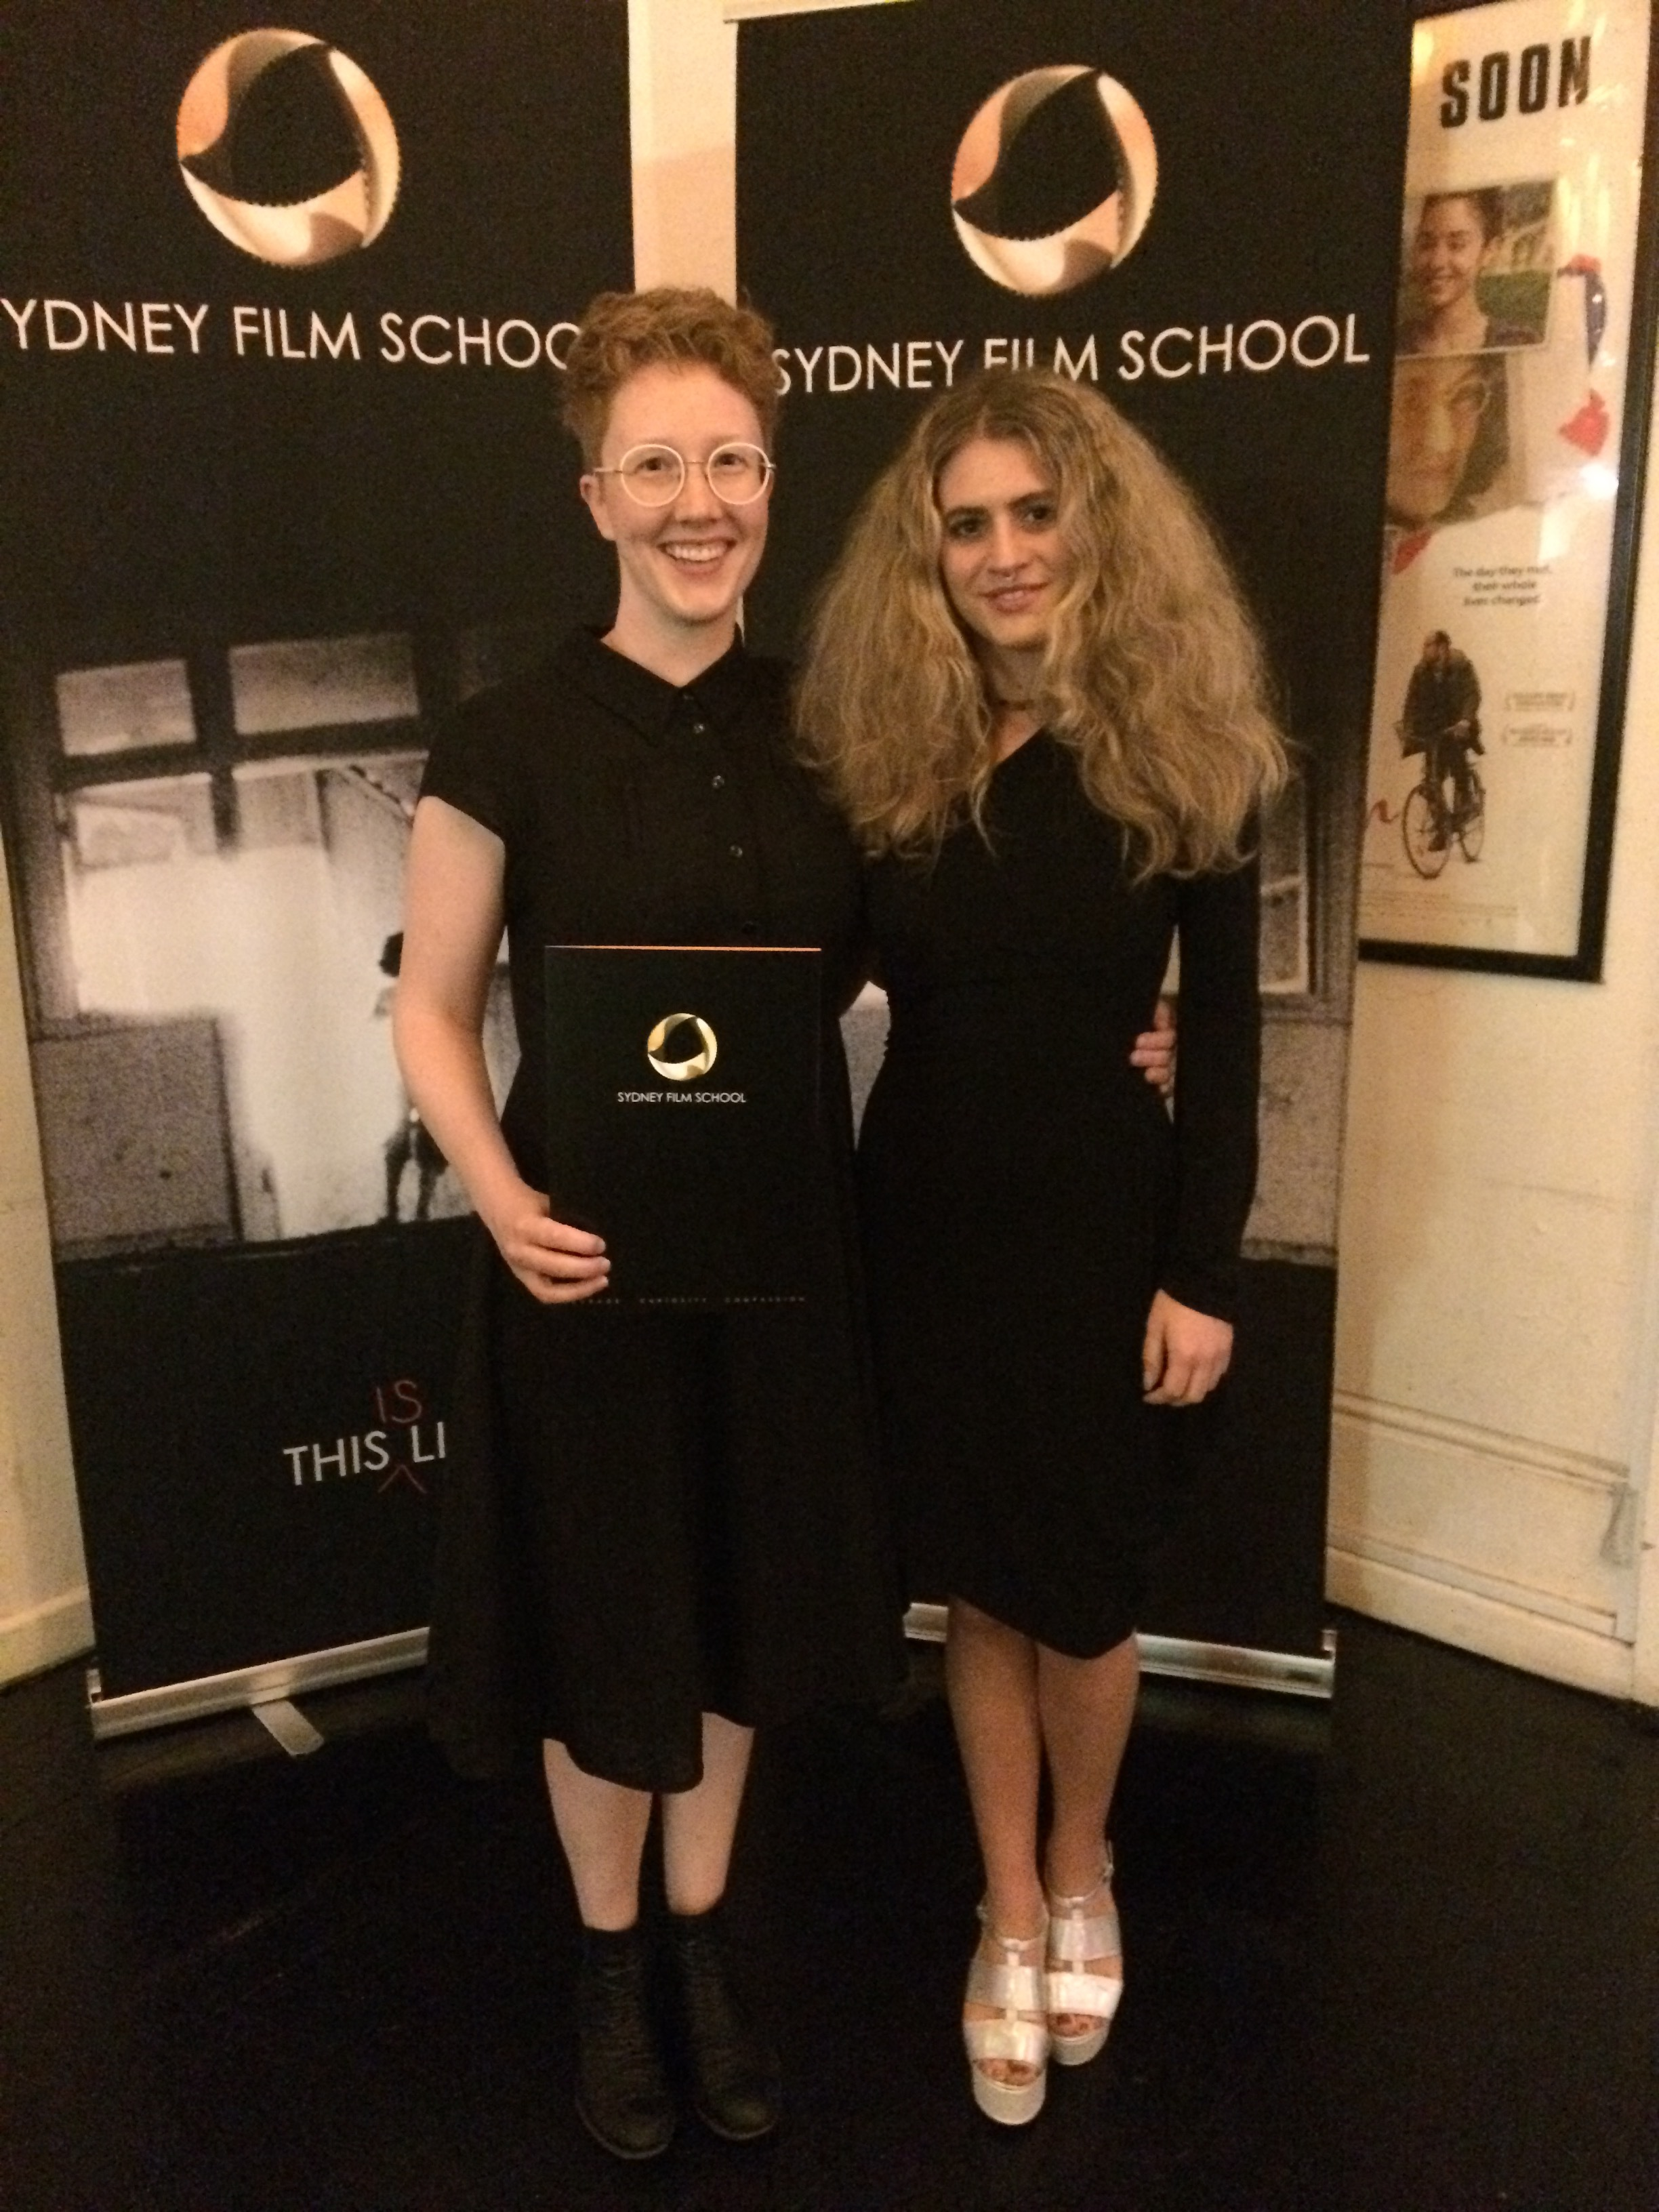 Me and the amazingly talented director Vittoria Merlino Dentice on the awards night at the Chauvel Cinema.